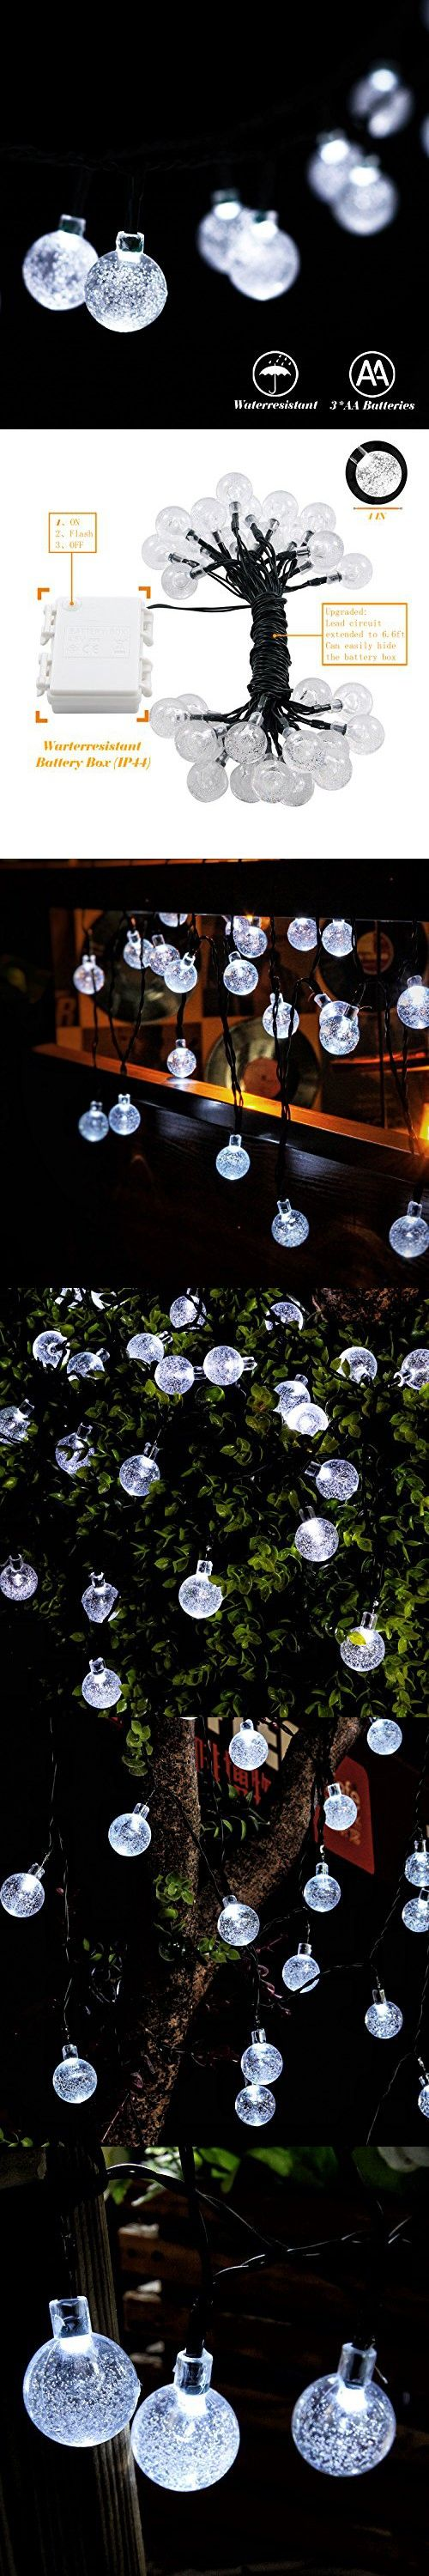 RECESKY Battery Operated Globe String Lights 30 LED 20.8ft Waterproof Fairy Crystal Ball Decor Lighting for Outdoor Indoor Garden Patio Party Home House Bedroom Christmas Tree Decorations (White)